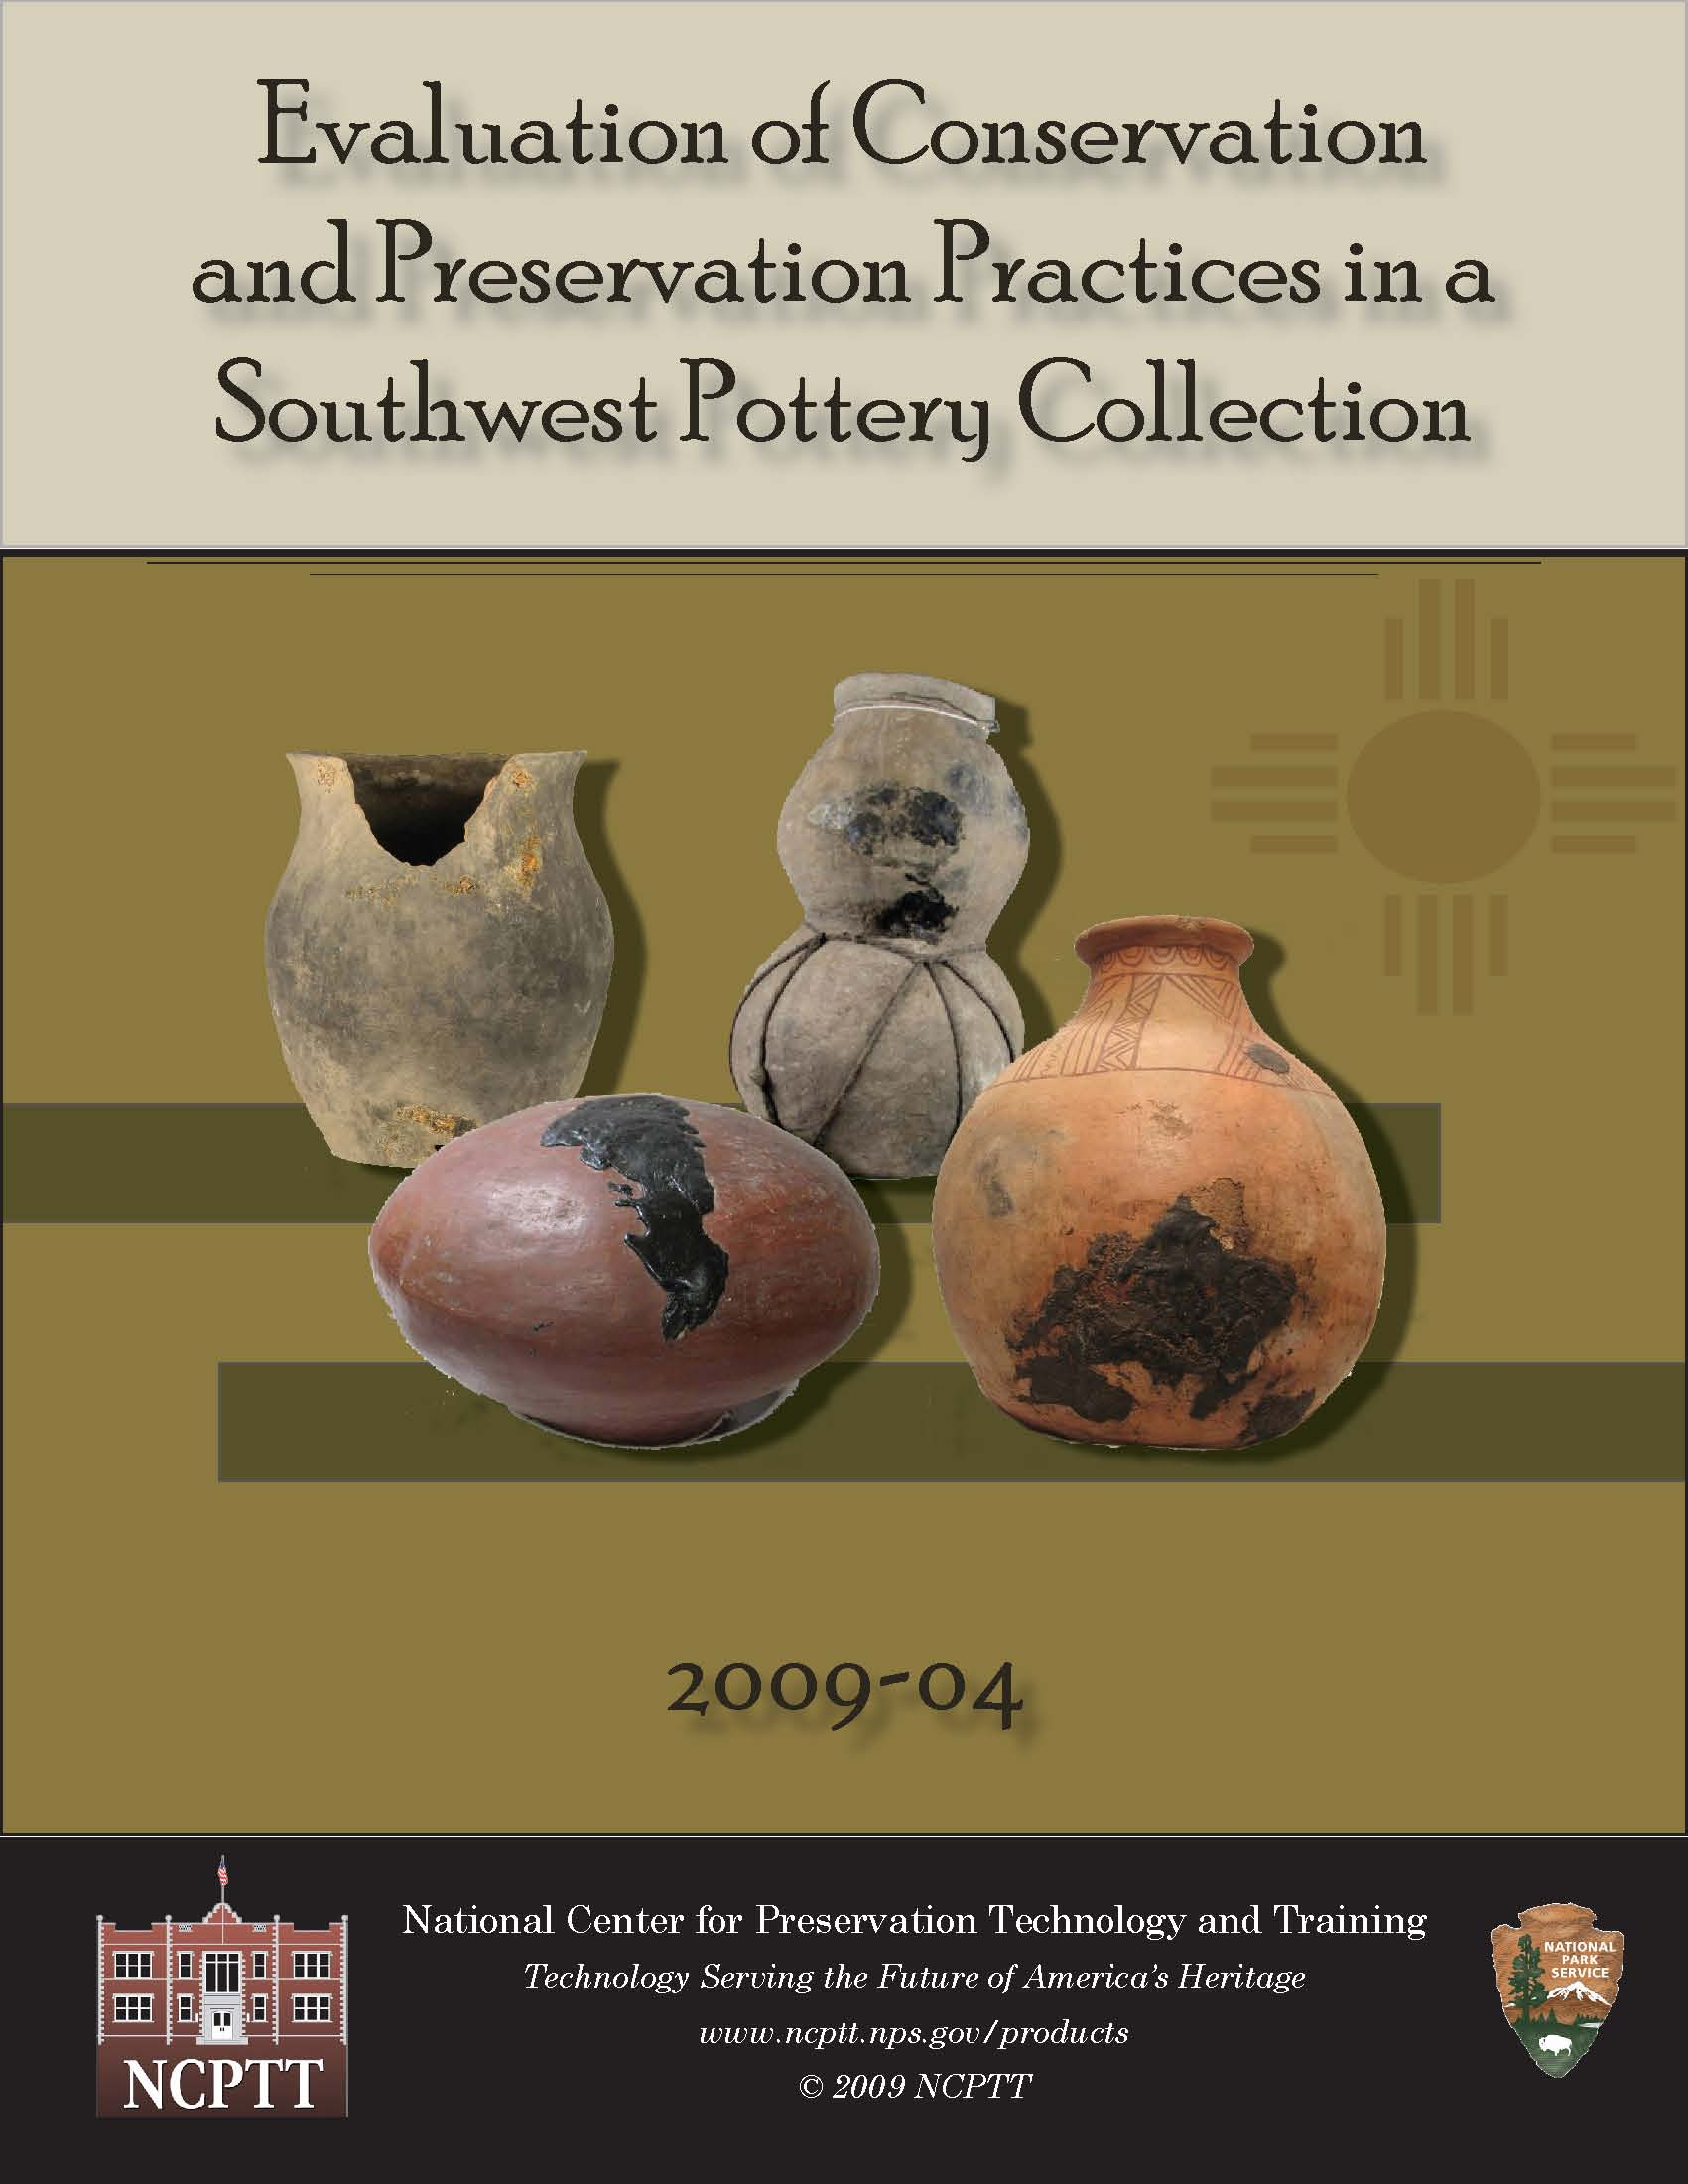 Evaluation of Conservation and Preservation Practices in a Southwest Pottery Collection - Document Cover